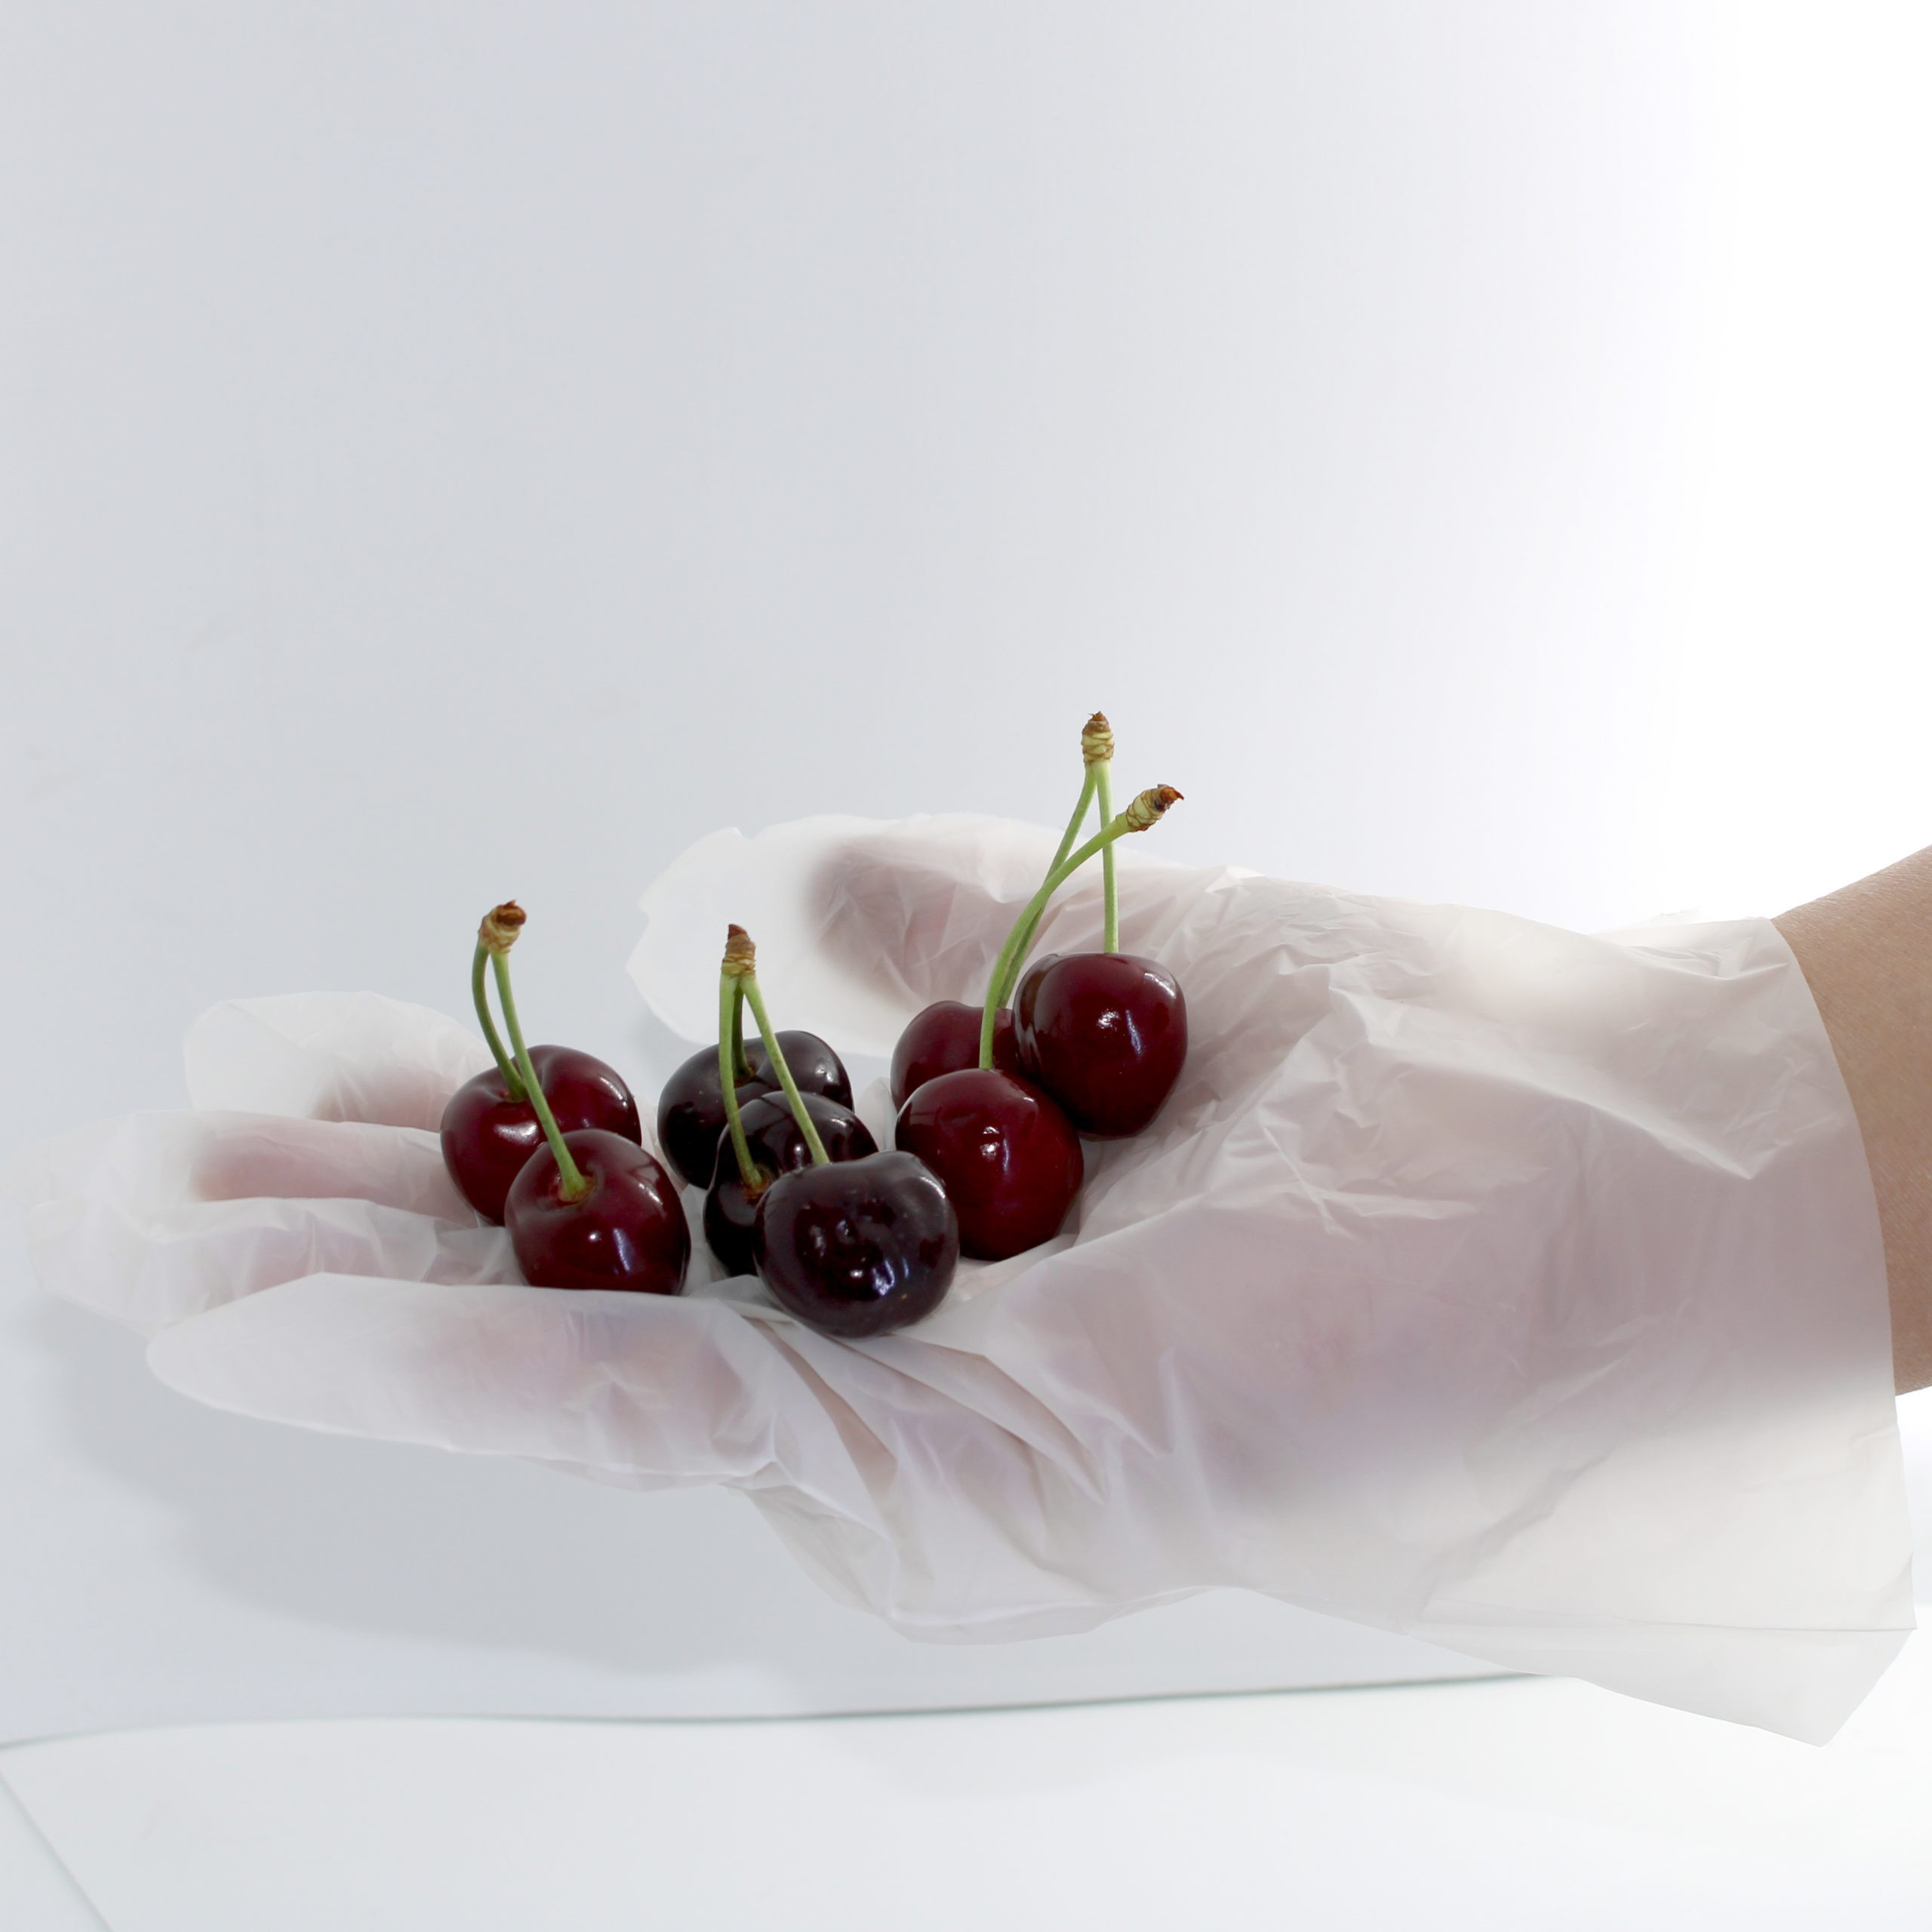 Home Compostable Gloves